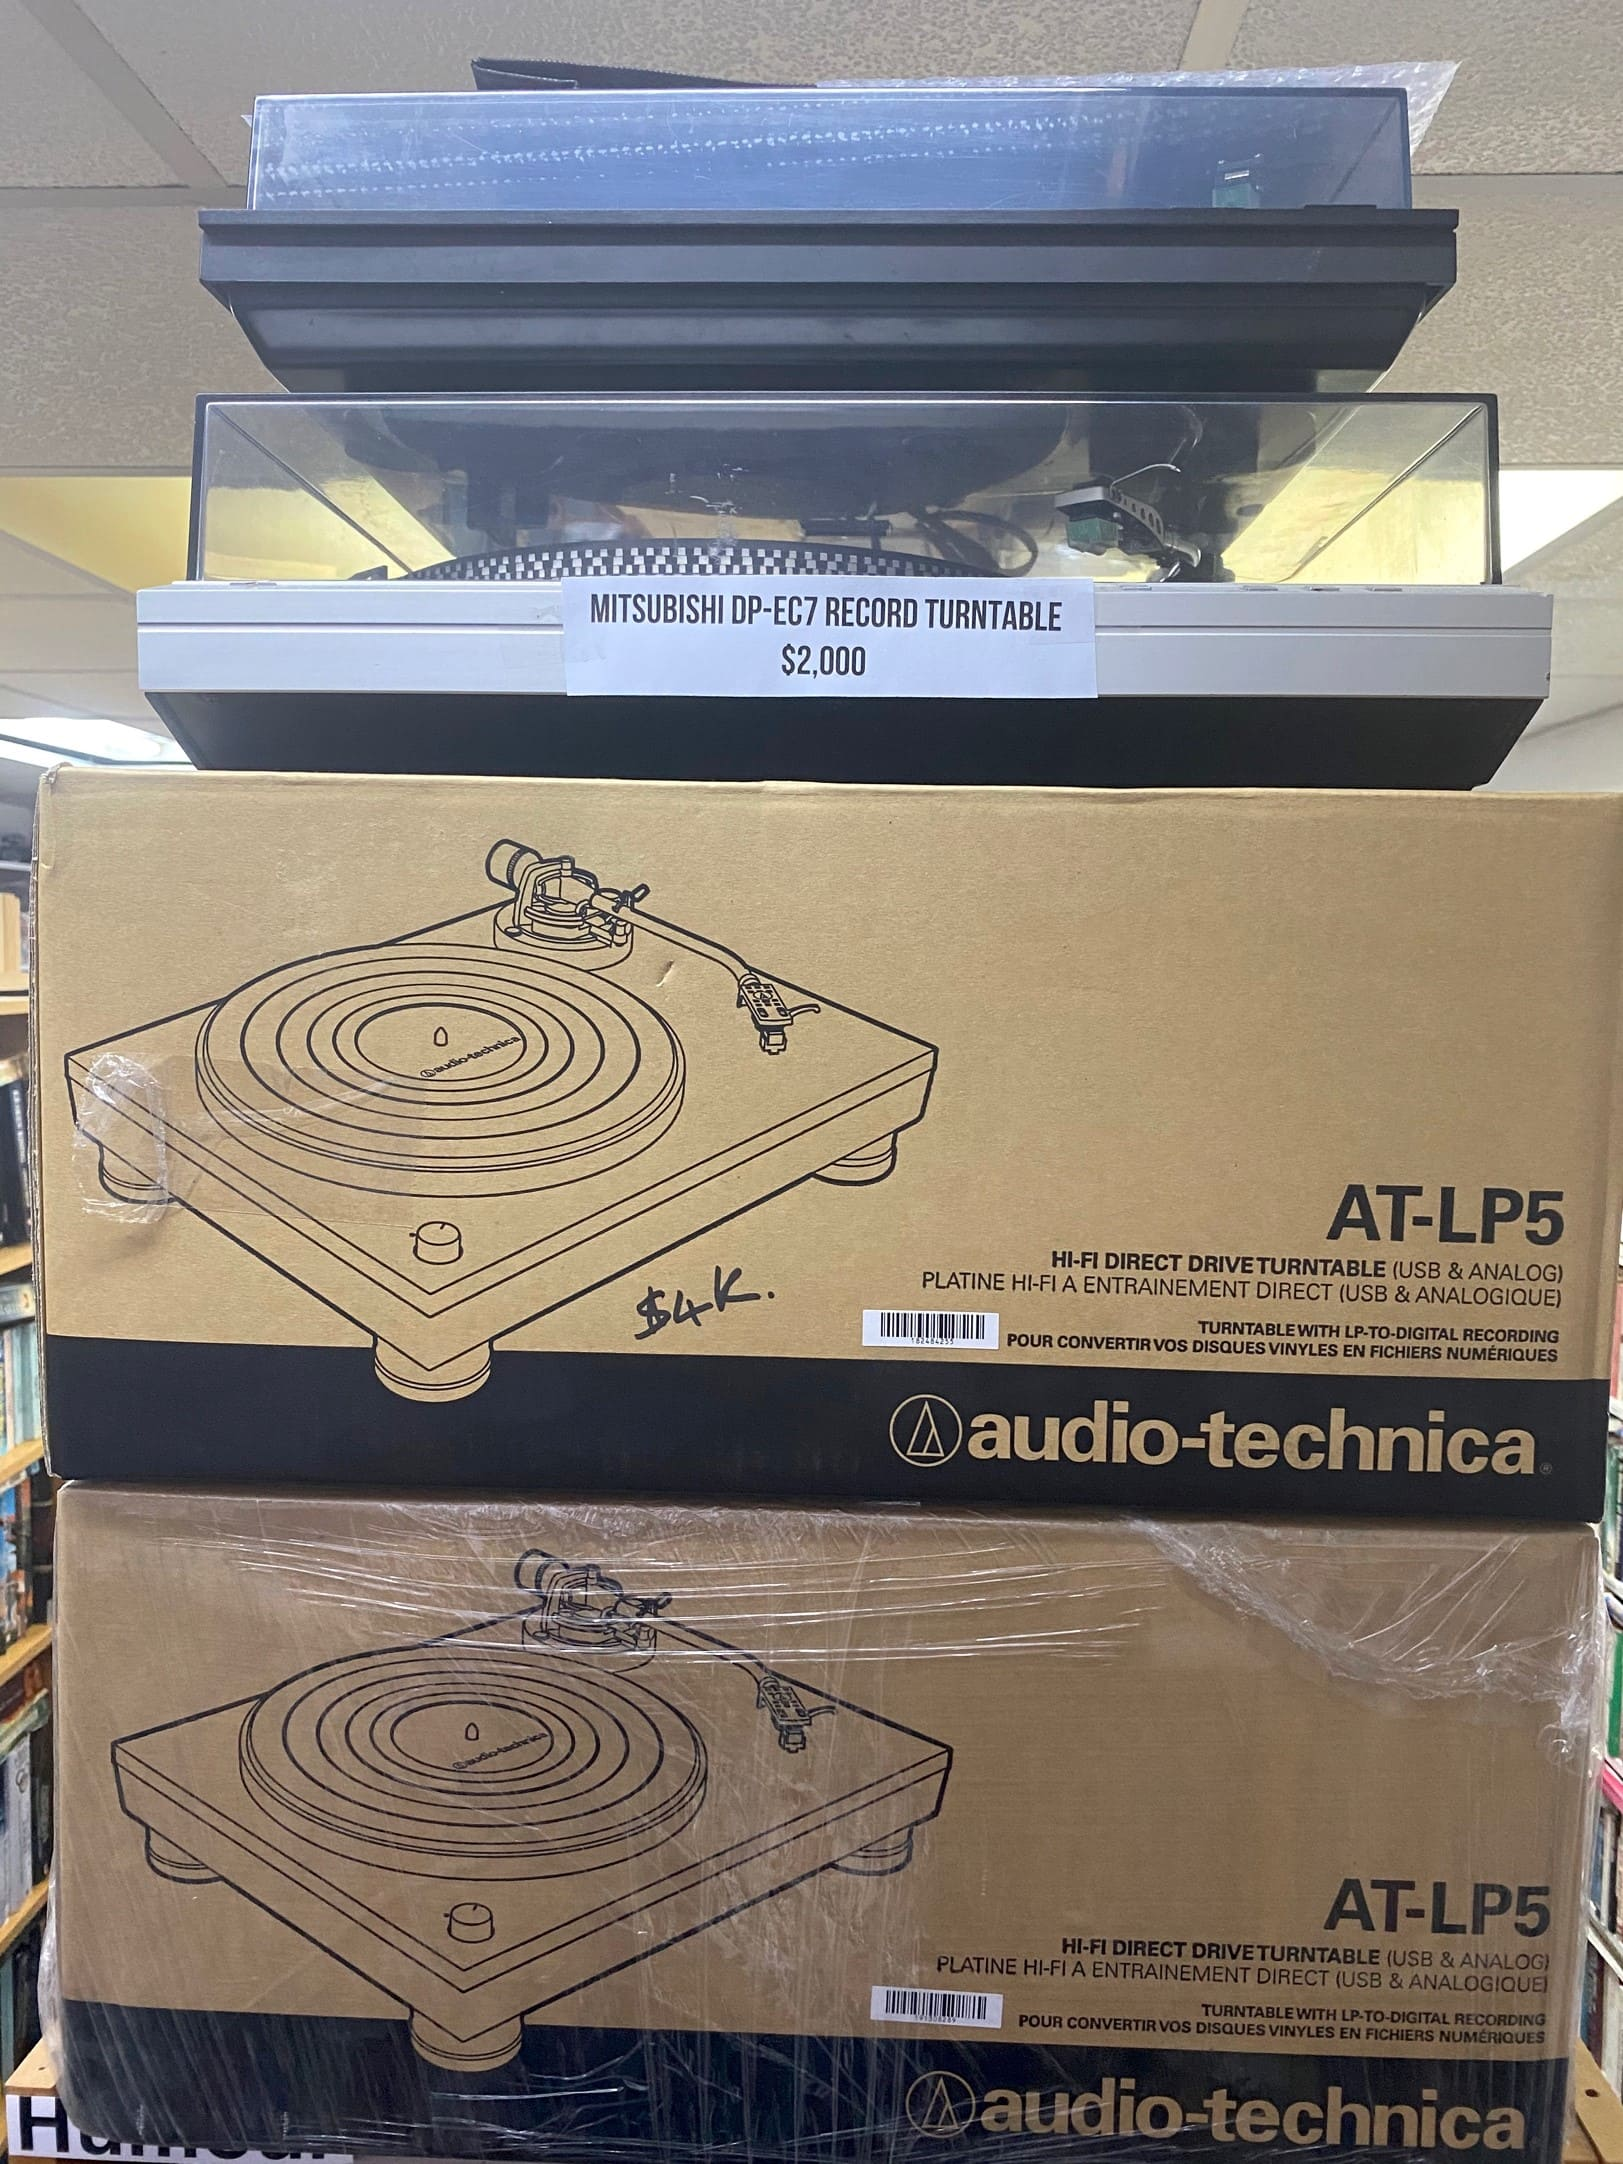 Turntables, speakers and hifi equipment at VIBE